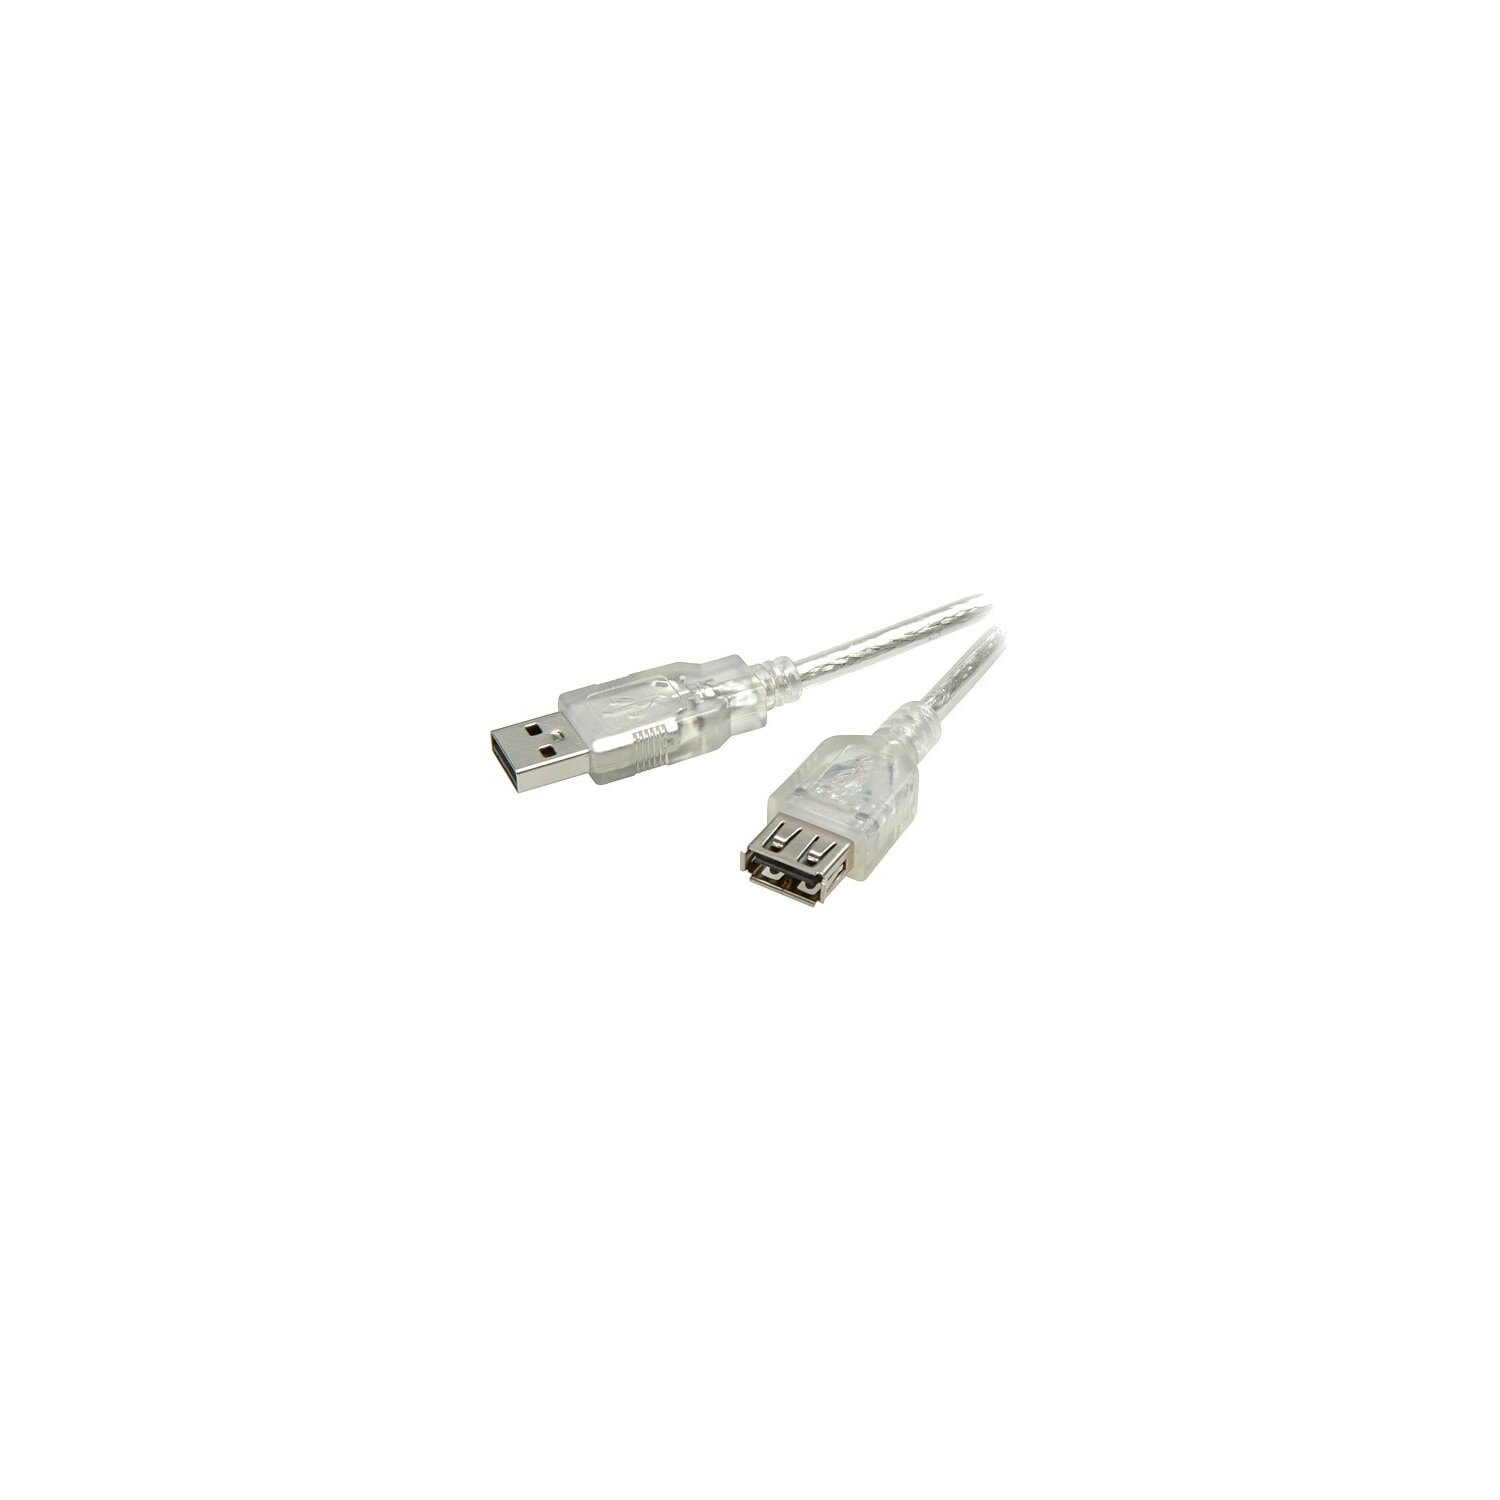 Kabel VIVANCO USB 2.0 A-A 1.8 m